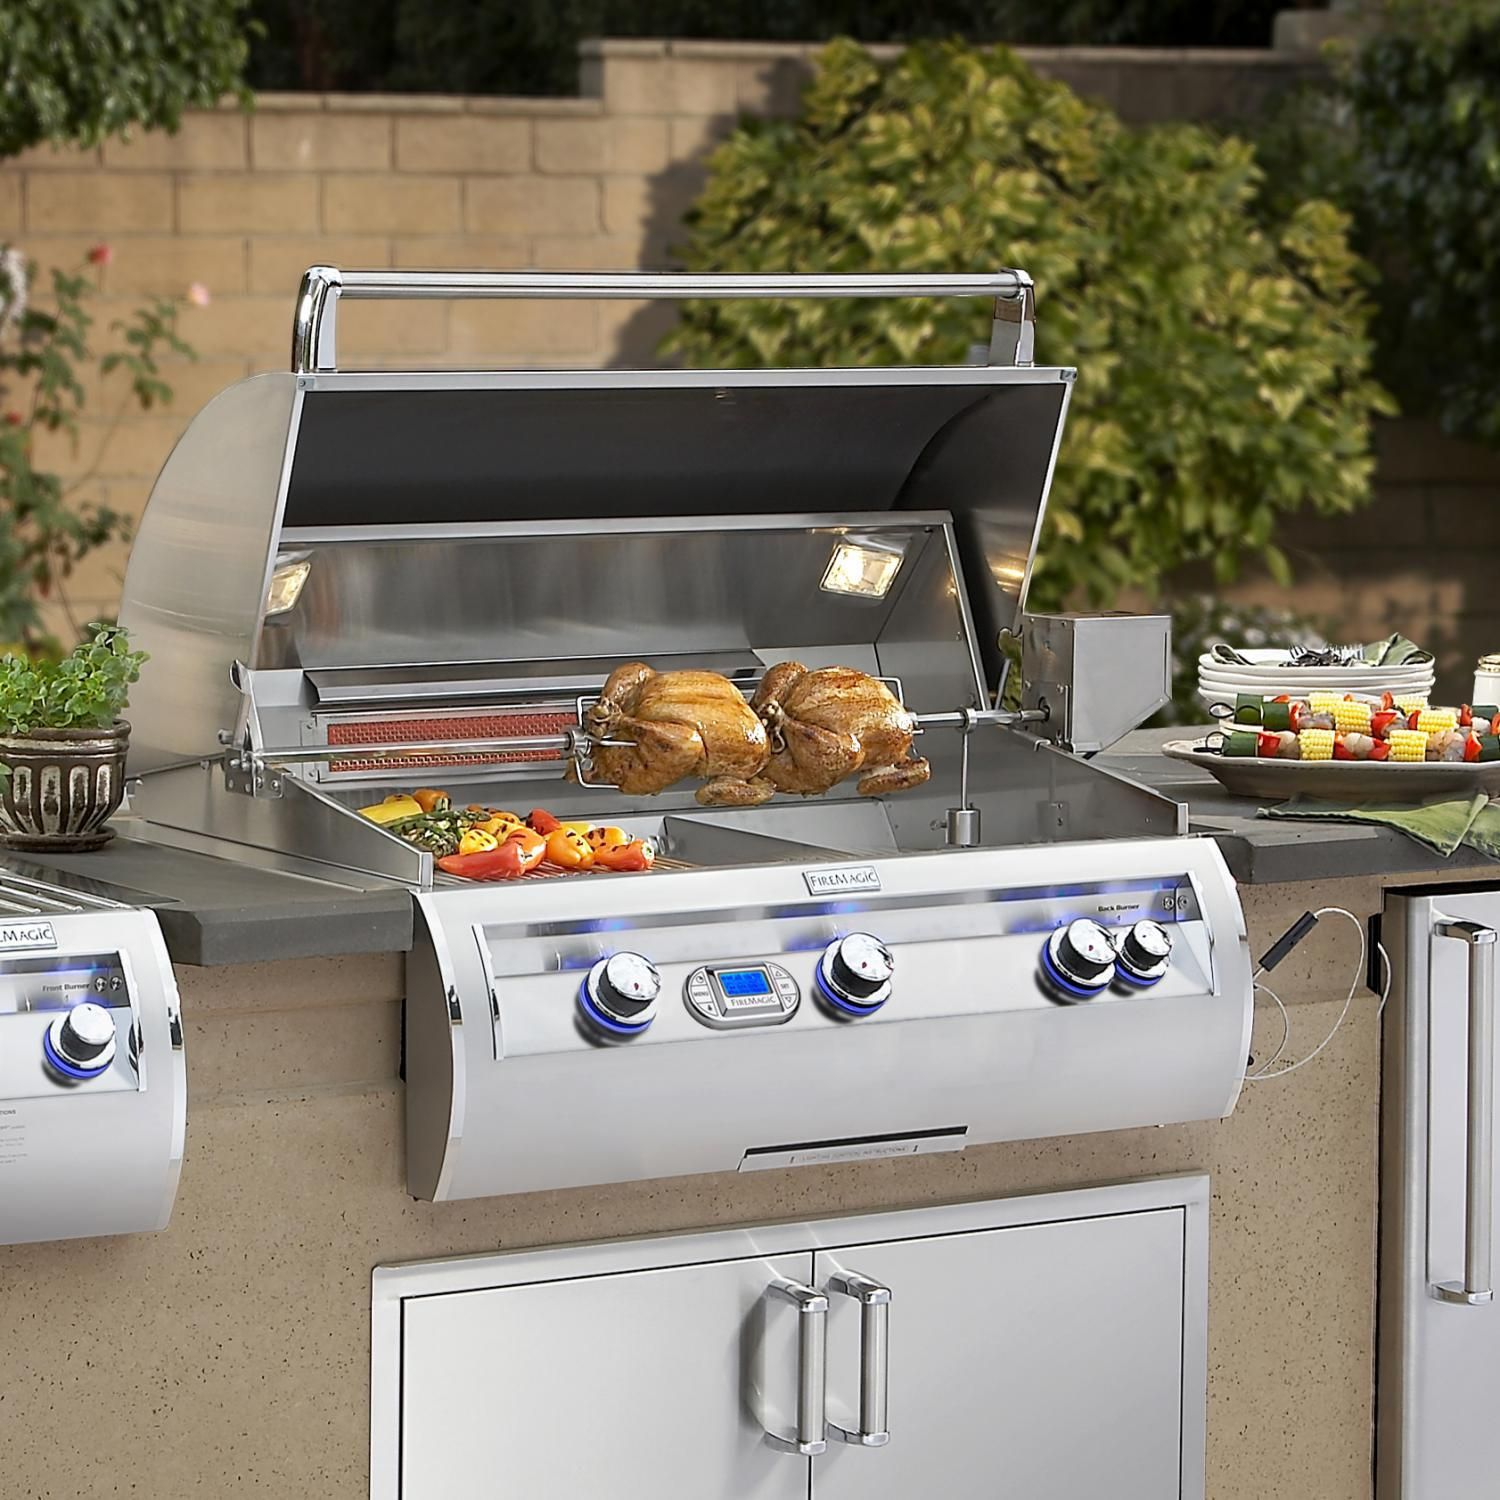 Pin By Hellogoodbye1538397771163 On Hello123123 With Images Natural Gas Grill Best Gas Grills Gas Grill